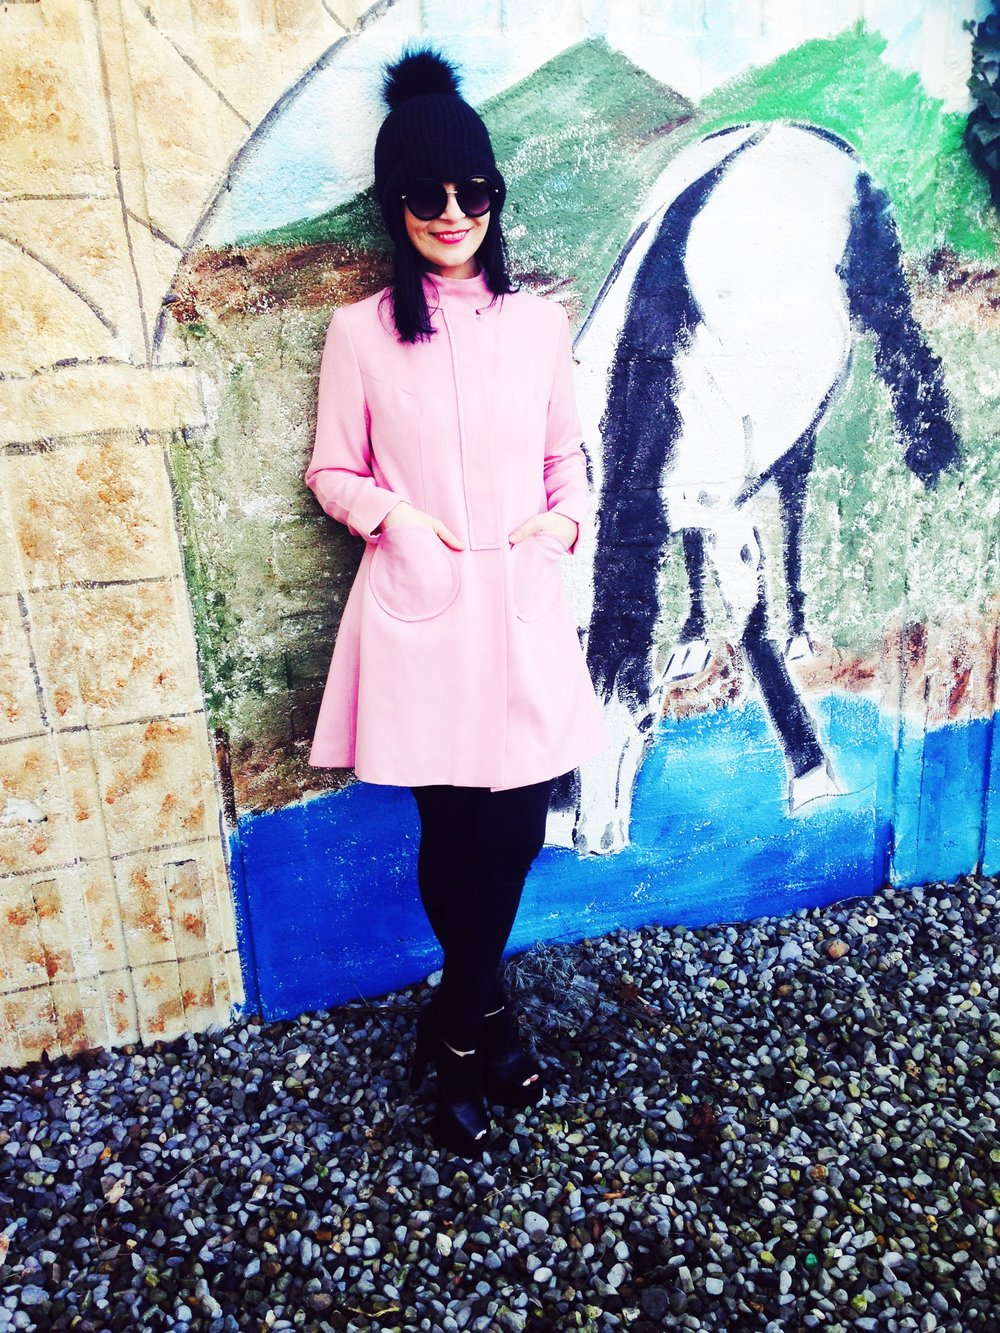 Amazing Cute Vintage Coat with Dainty Heart shape pockets by Jean Small Dublin!